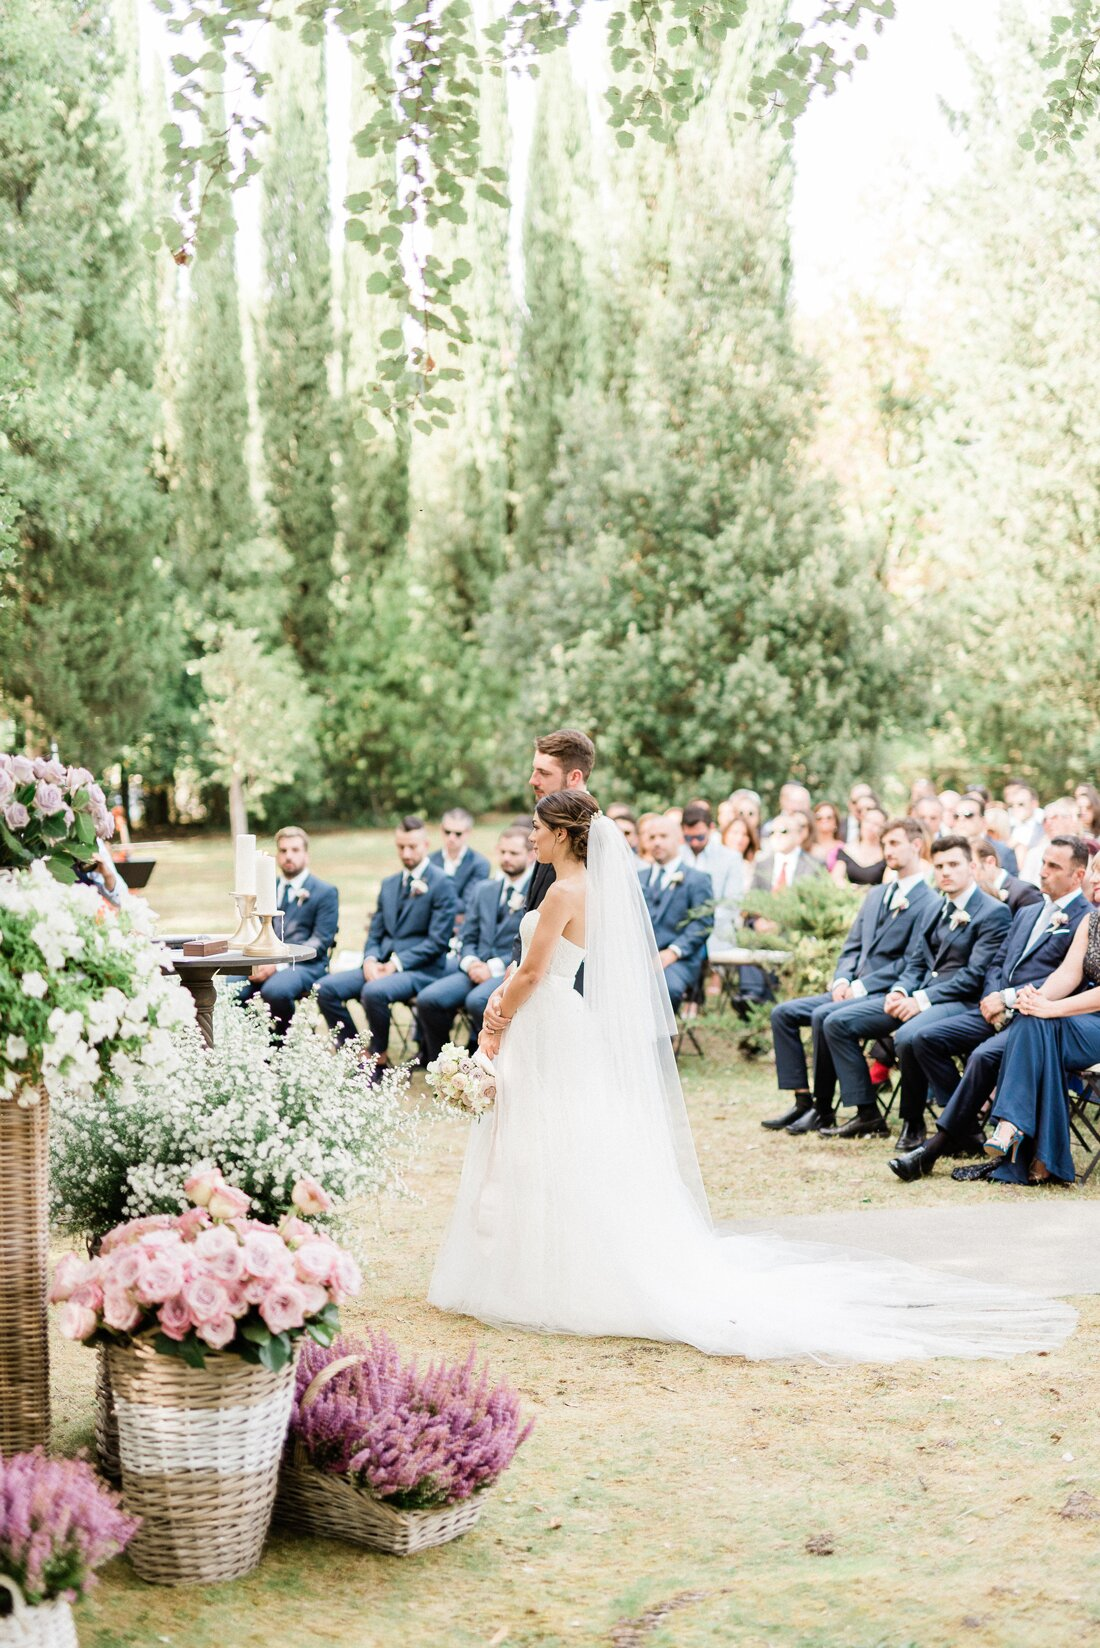 What S The Ideal Ceremony Start Time For A Summer Wedding